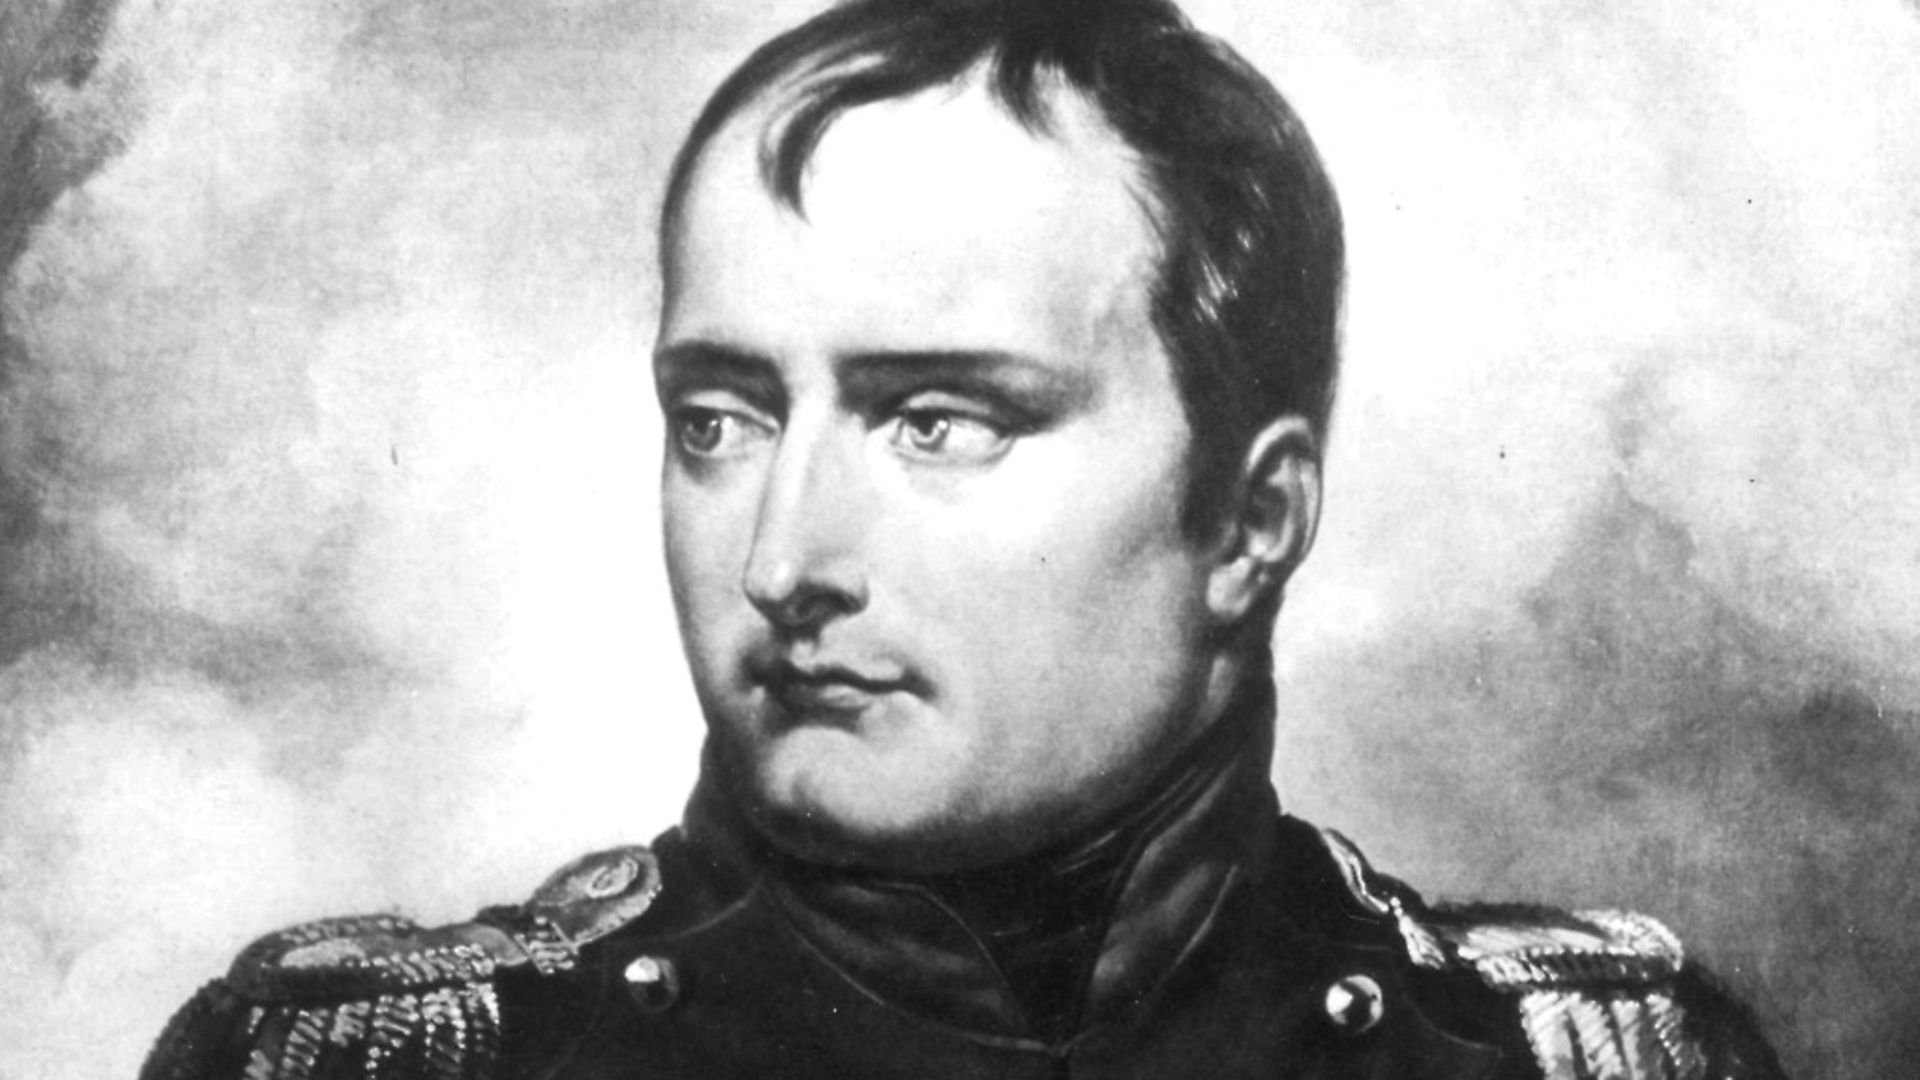 Napoleon I, Emperor of the French(Photo by Hulton Archive/Getty Images) - Credit: Getty Images